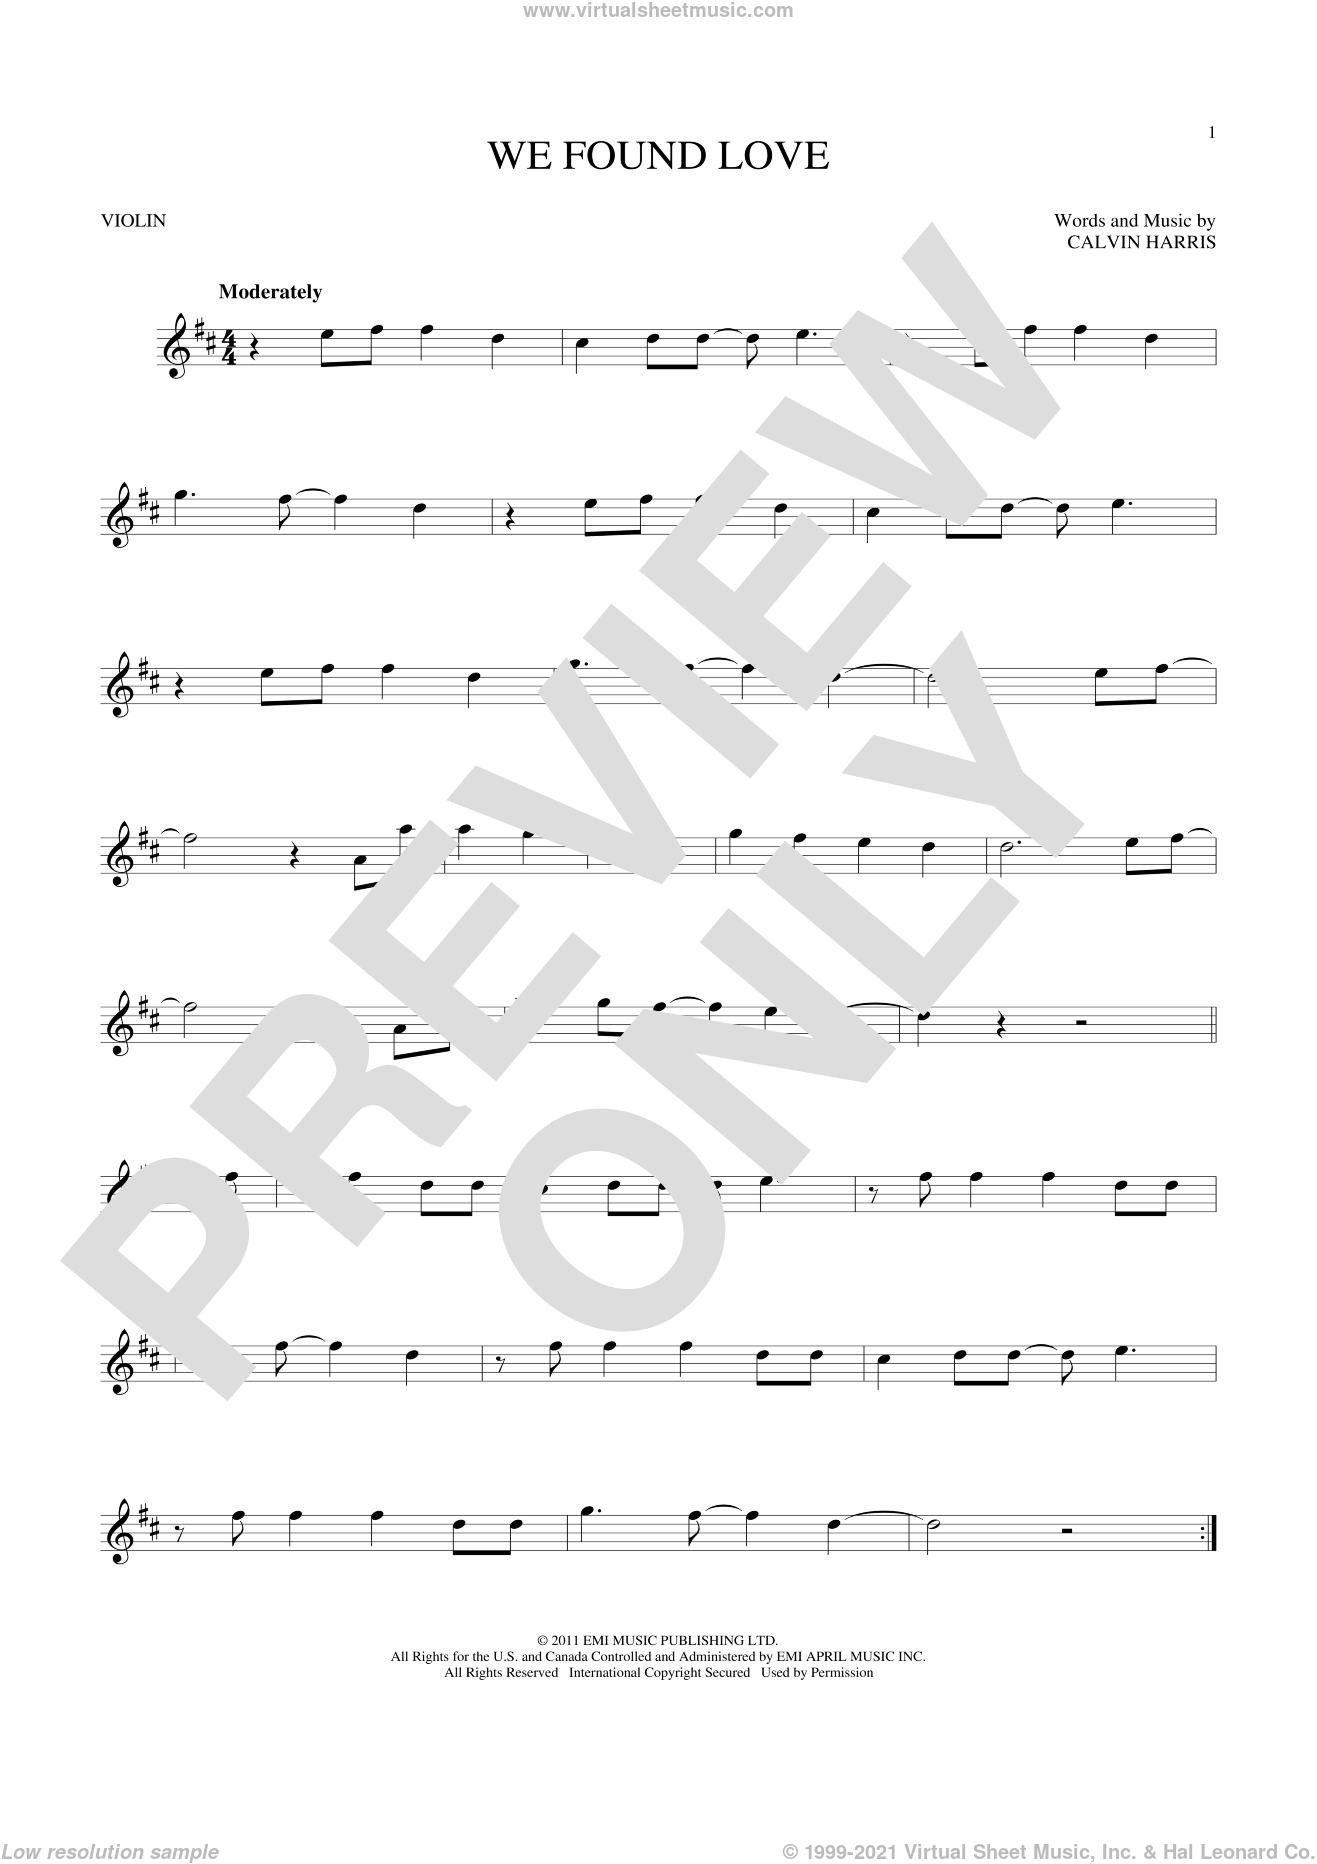 We Found Love sheet music for violin solo by Rihanna featuring Calvin Harris and Calvin Harris. Score Image Preview.